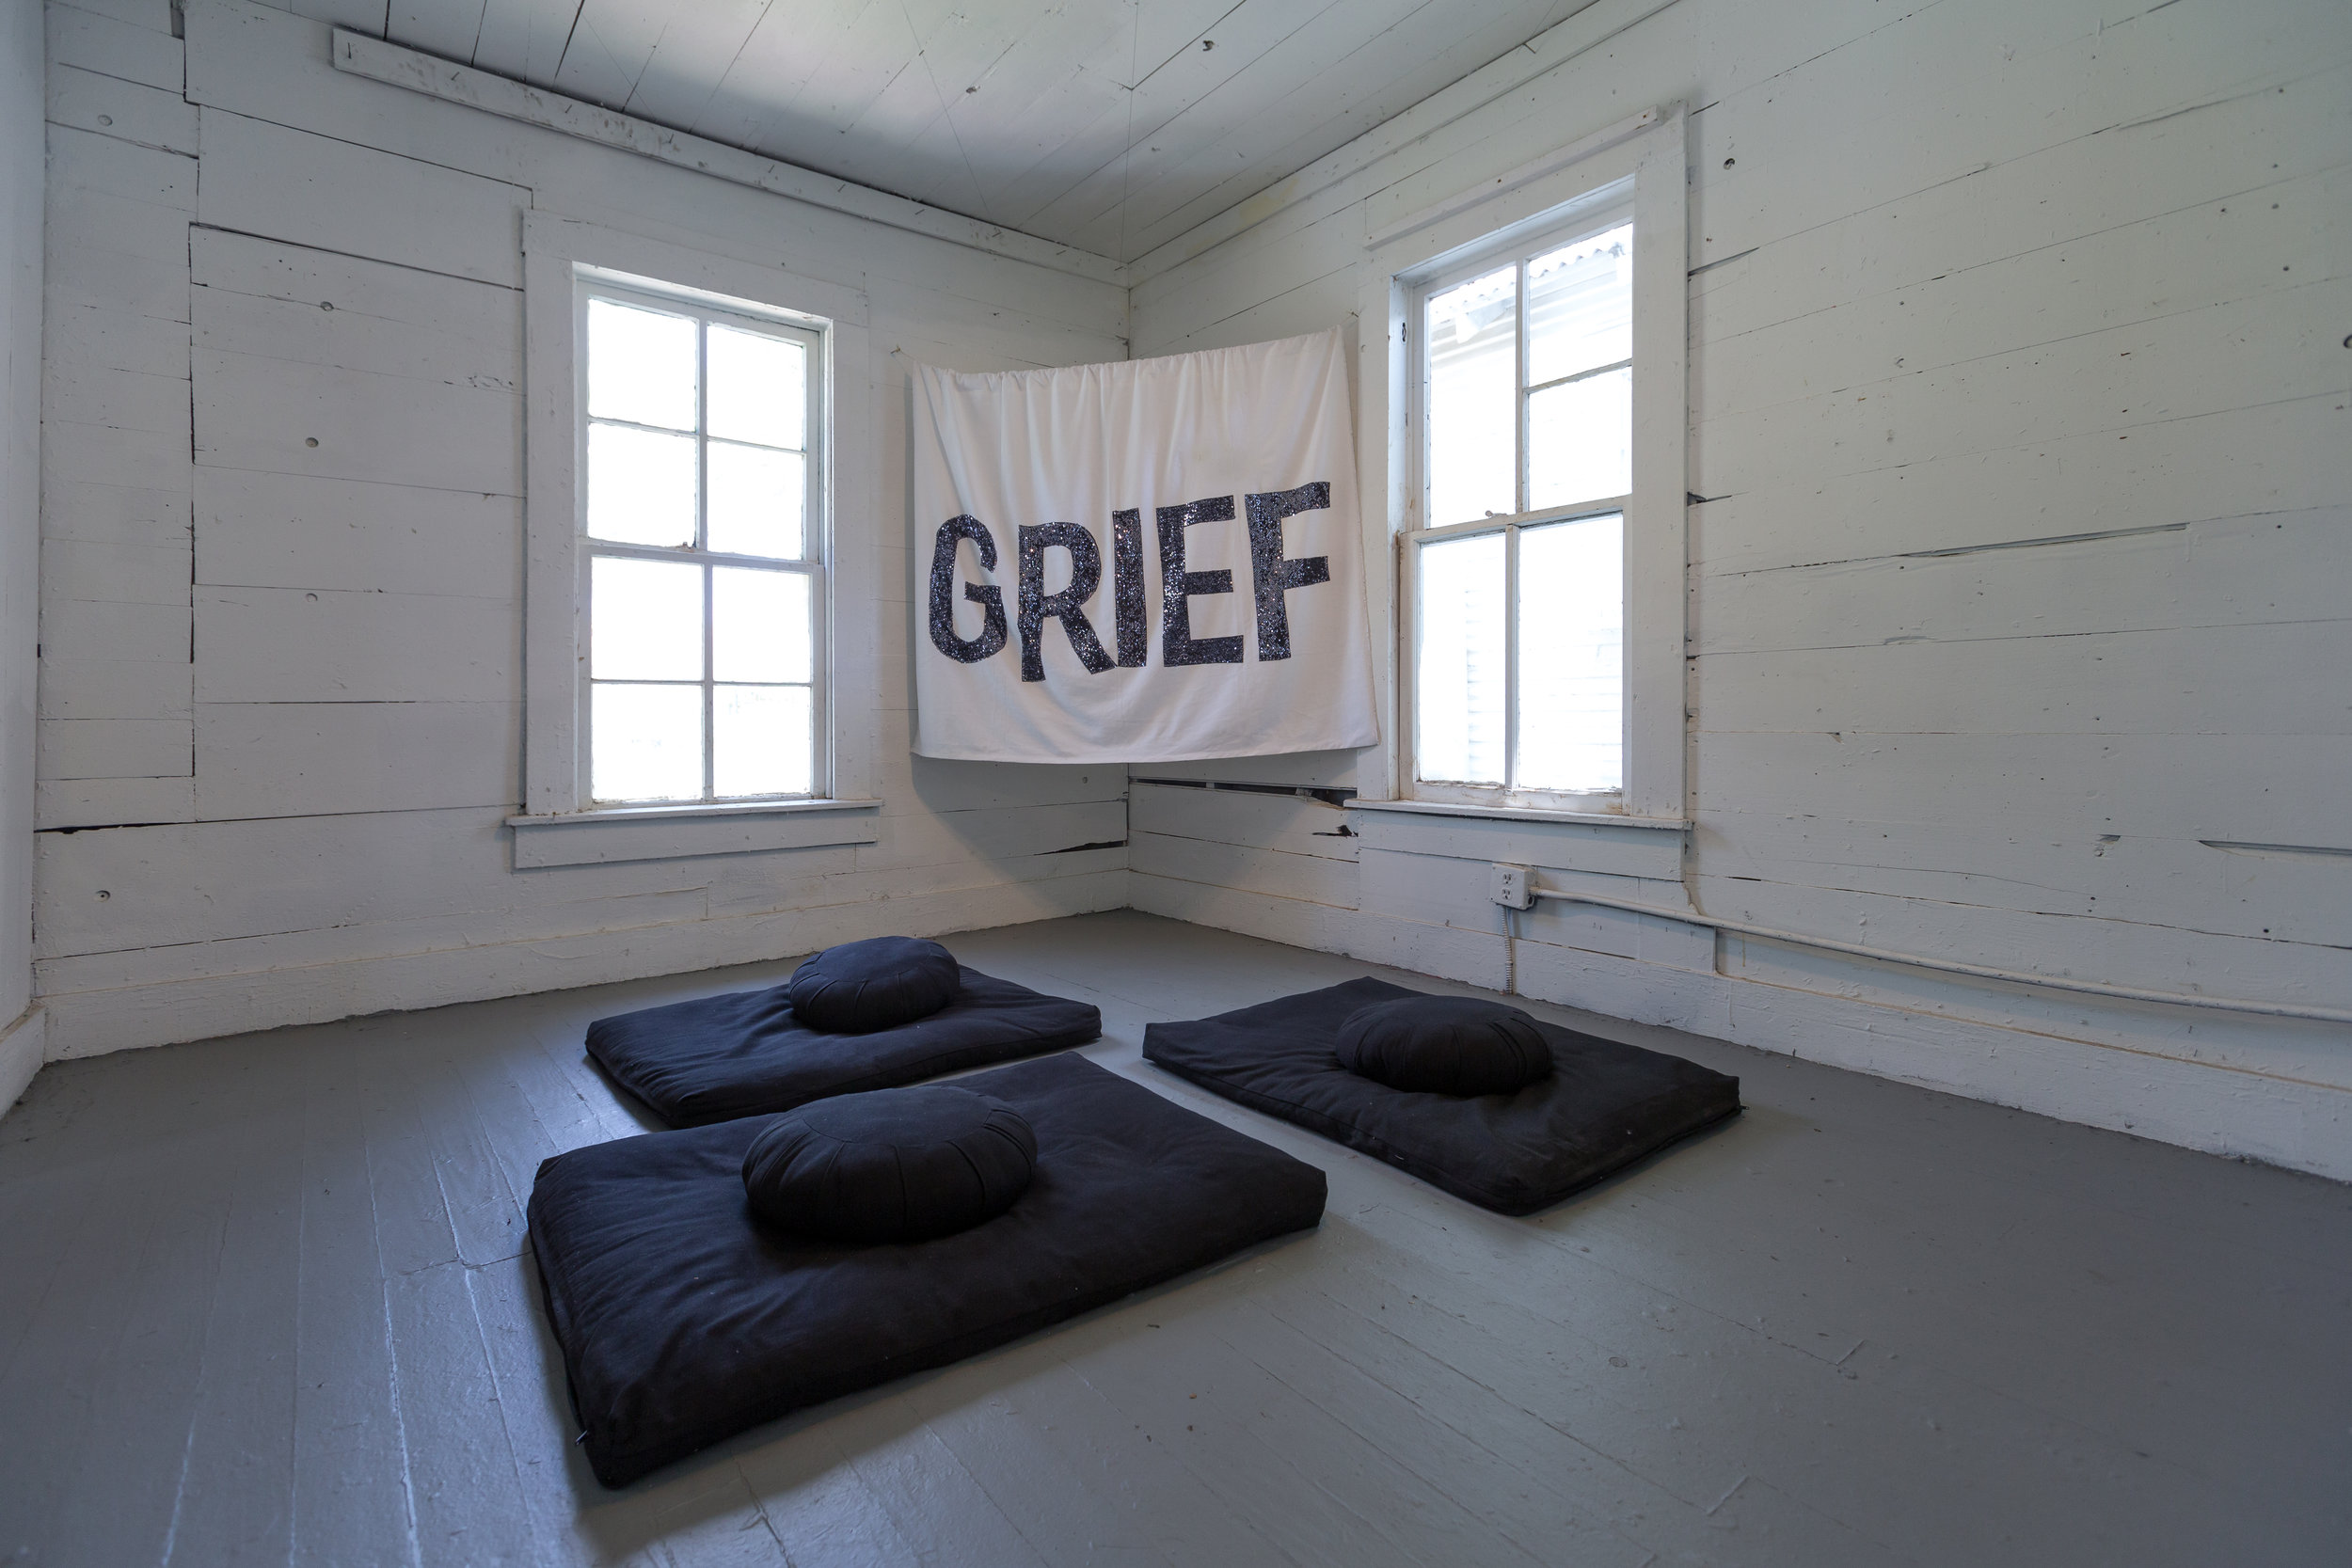 Nine Night , Objects Group of Black Women Artists for Black Lives Matter, 2017, curated by Ryan N. Dennis. Photo by Alex Barber.